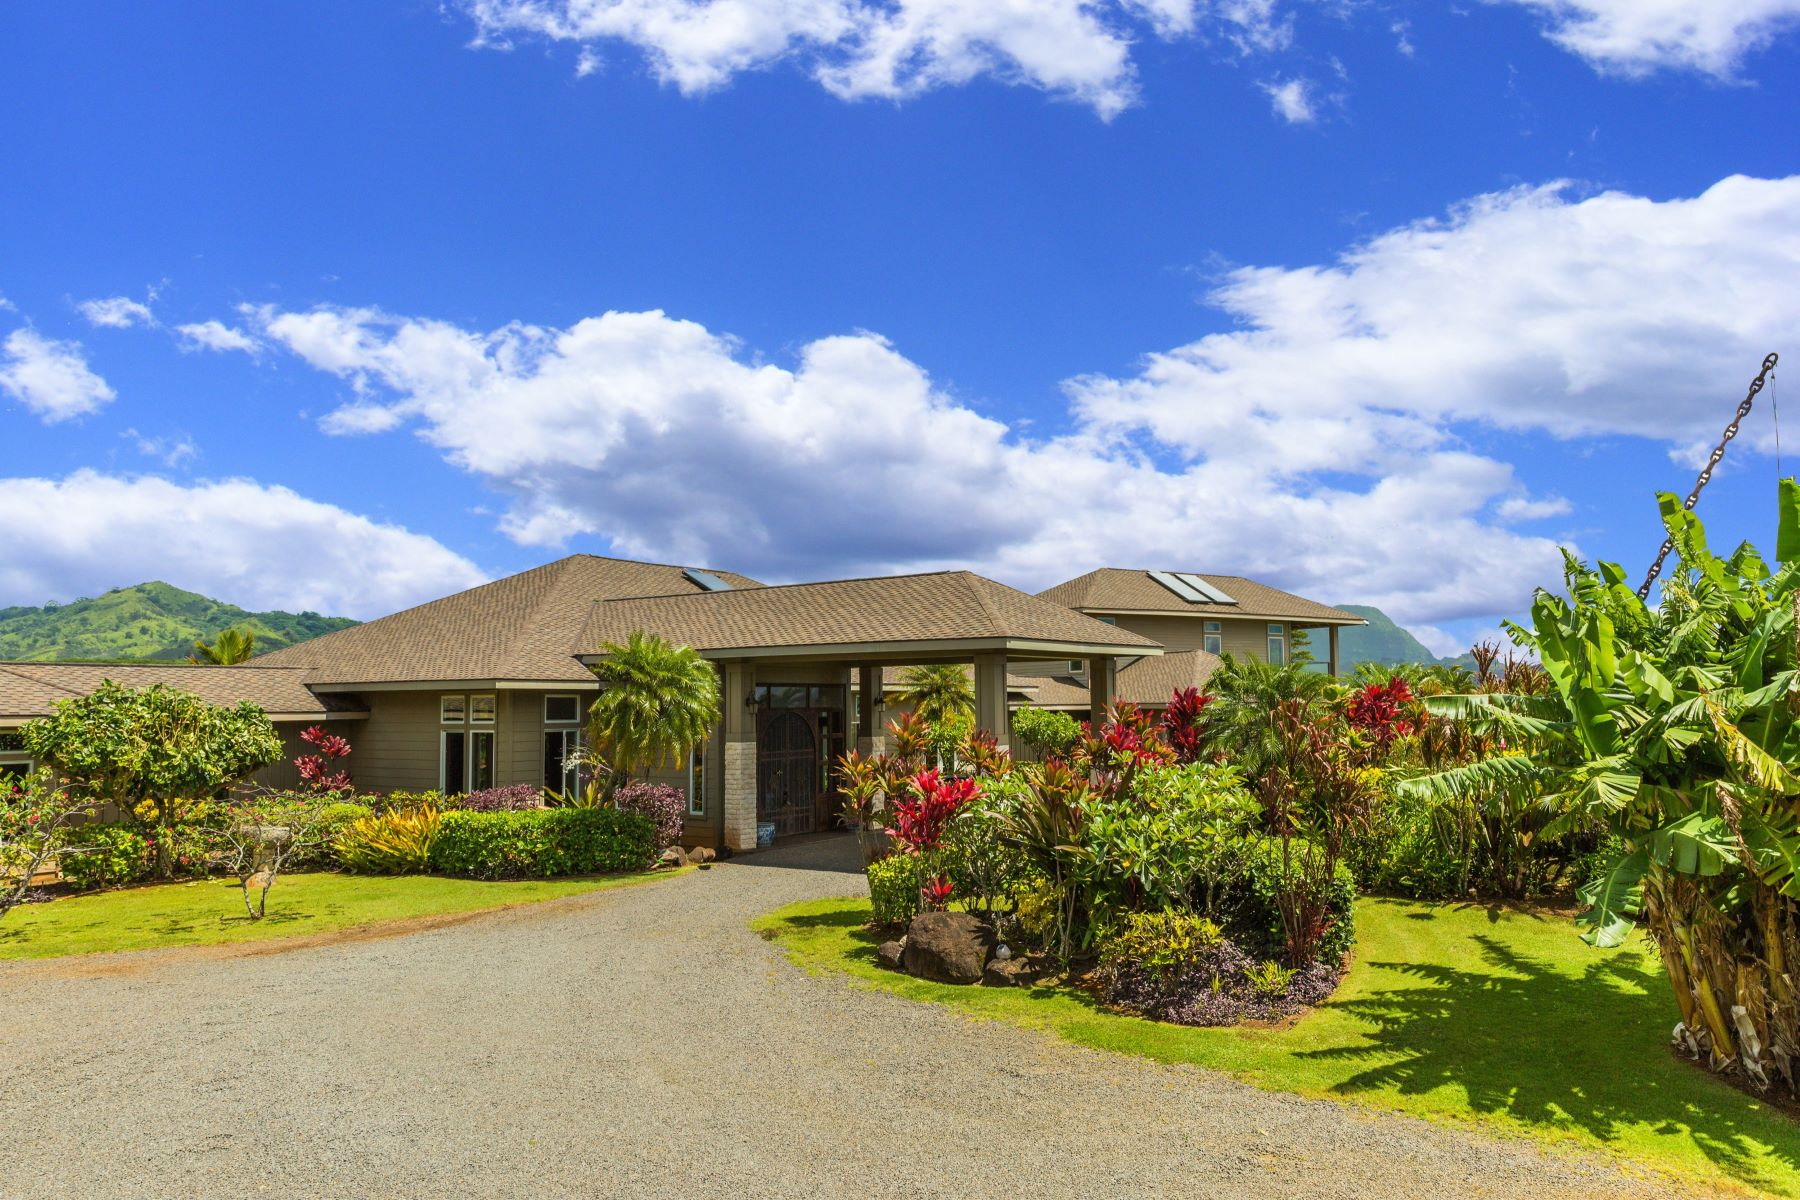 Maison unifamiliale pour l Vente à Stunning Private South Shore Ranch Estate in Omao, Kauai 4825-P Koloa Road #2A Koloa, Hawaii 96756 États-Unis